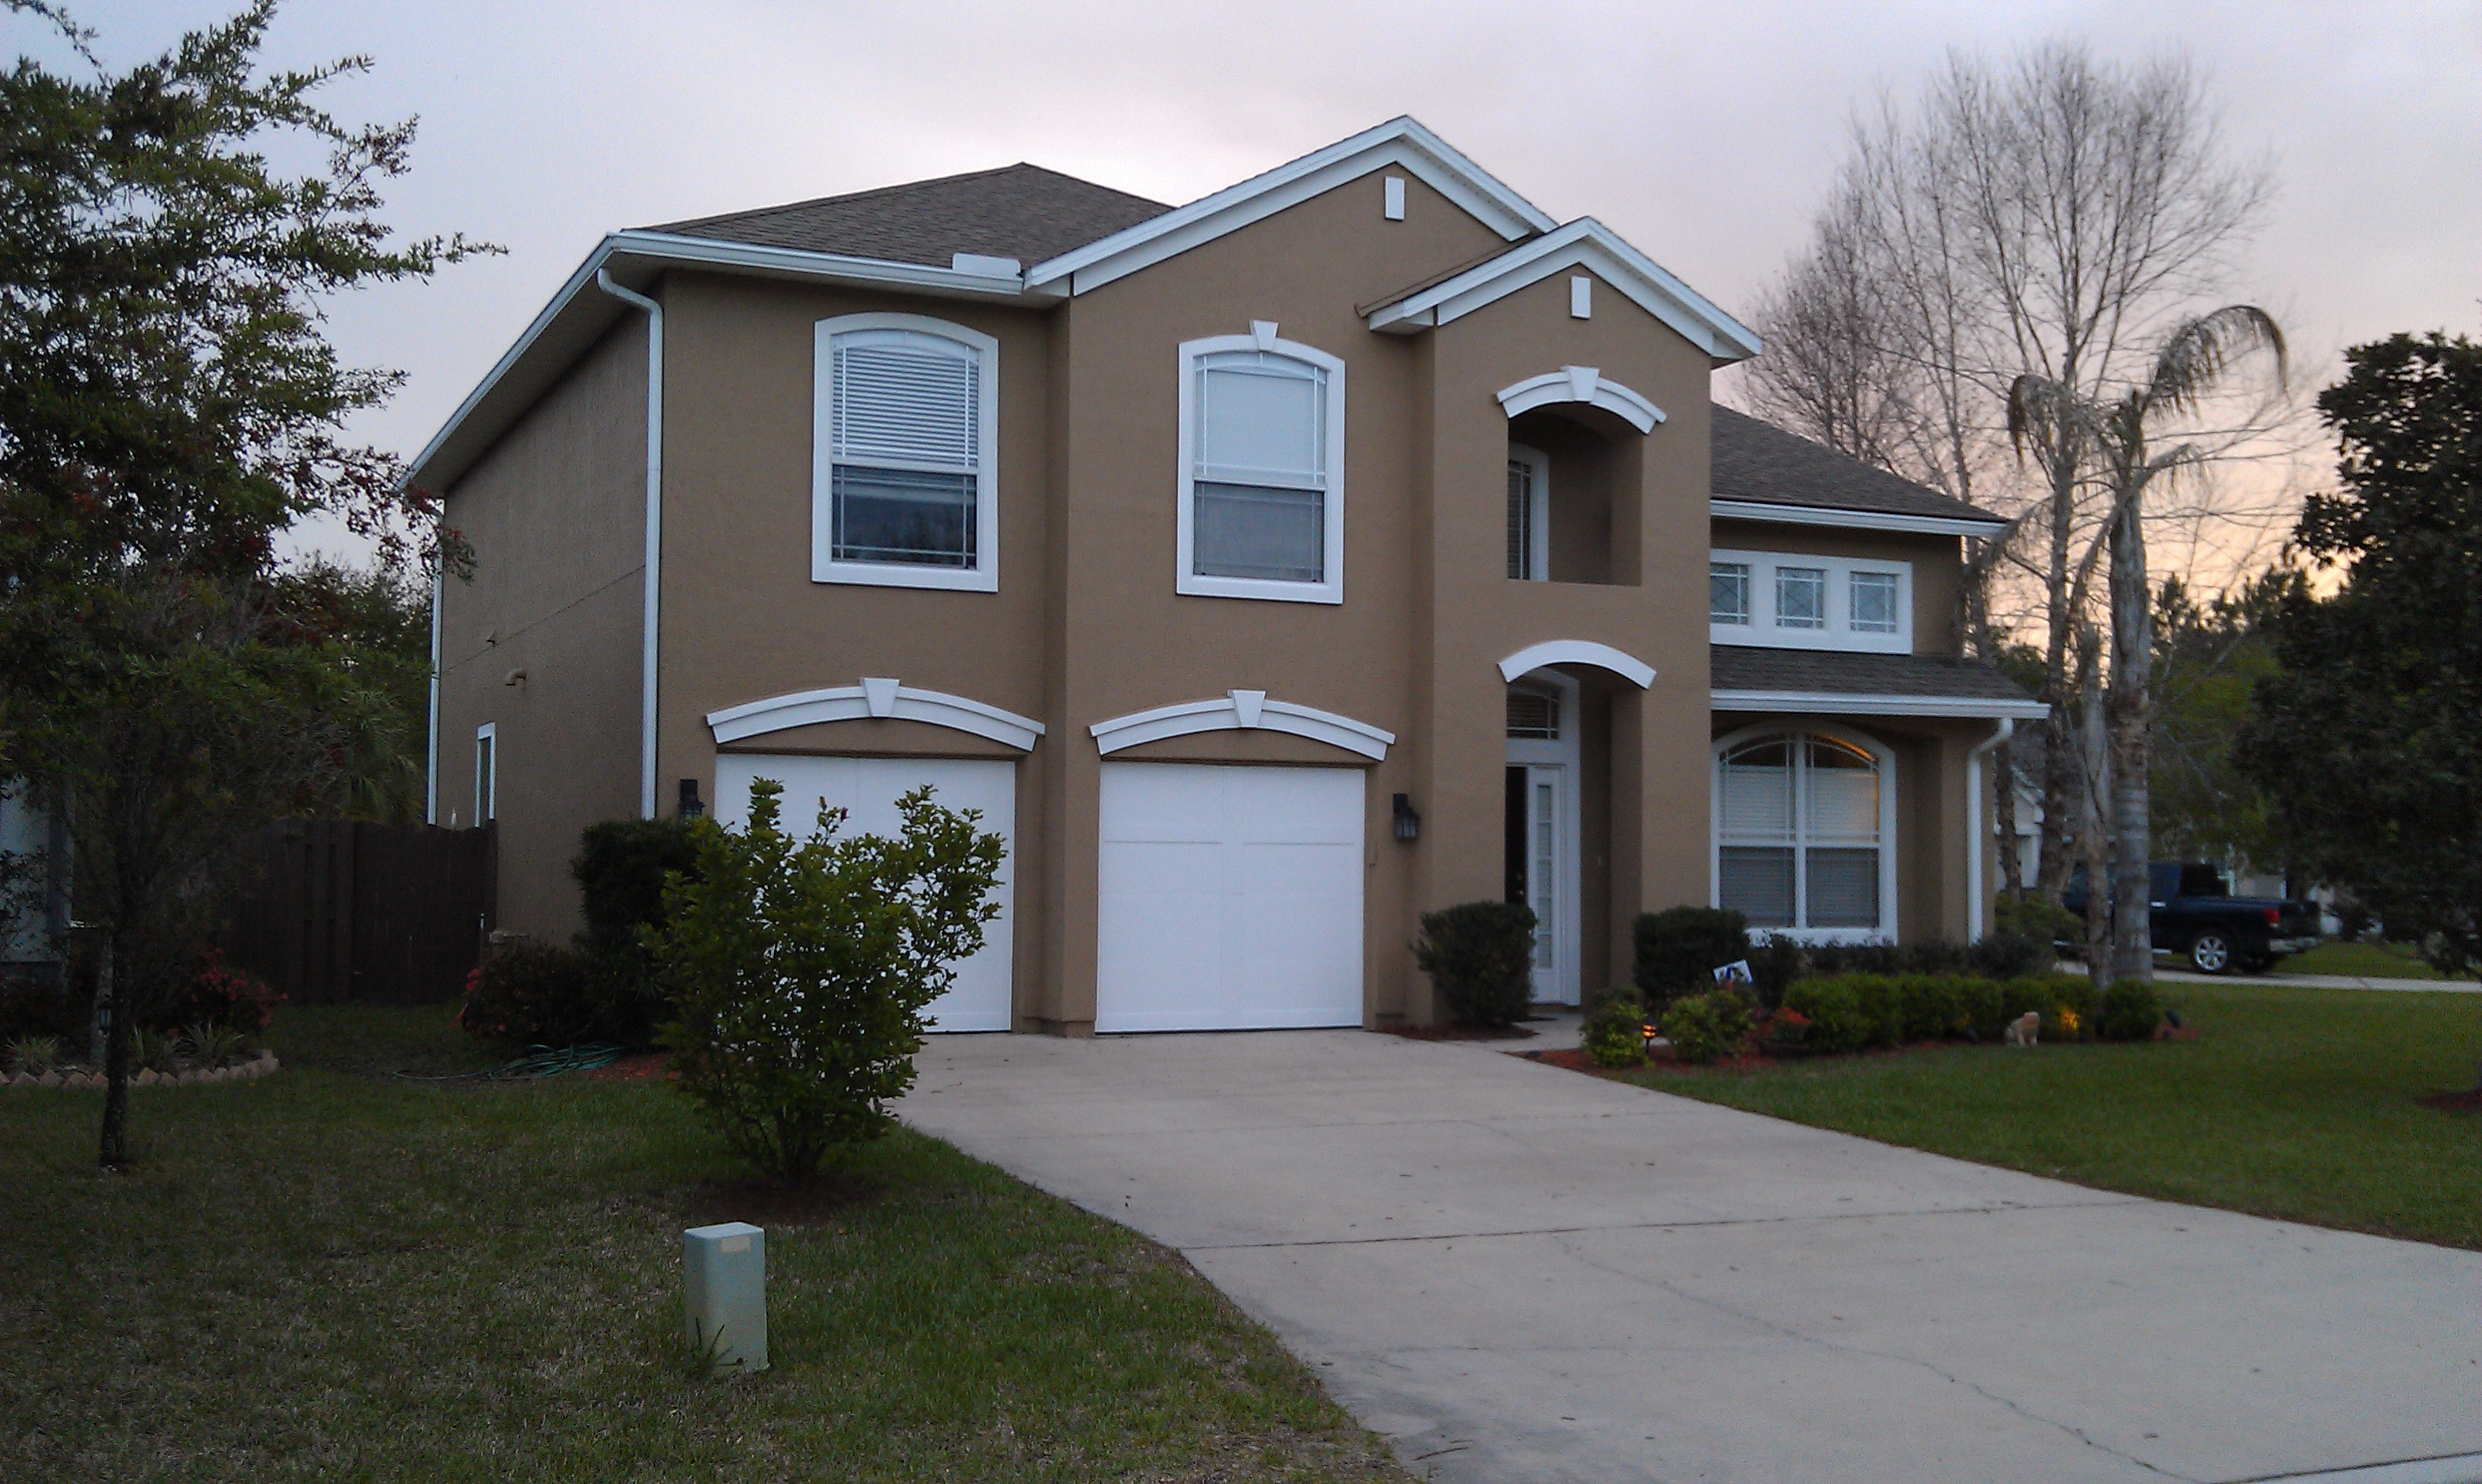 Exterior painting contractor for jacksonville home projects - Exterior waterproofing paint plan ...